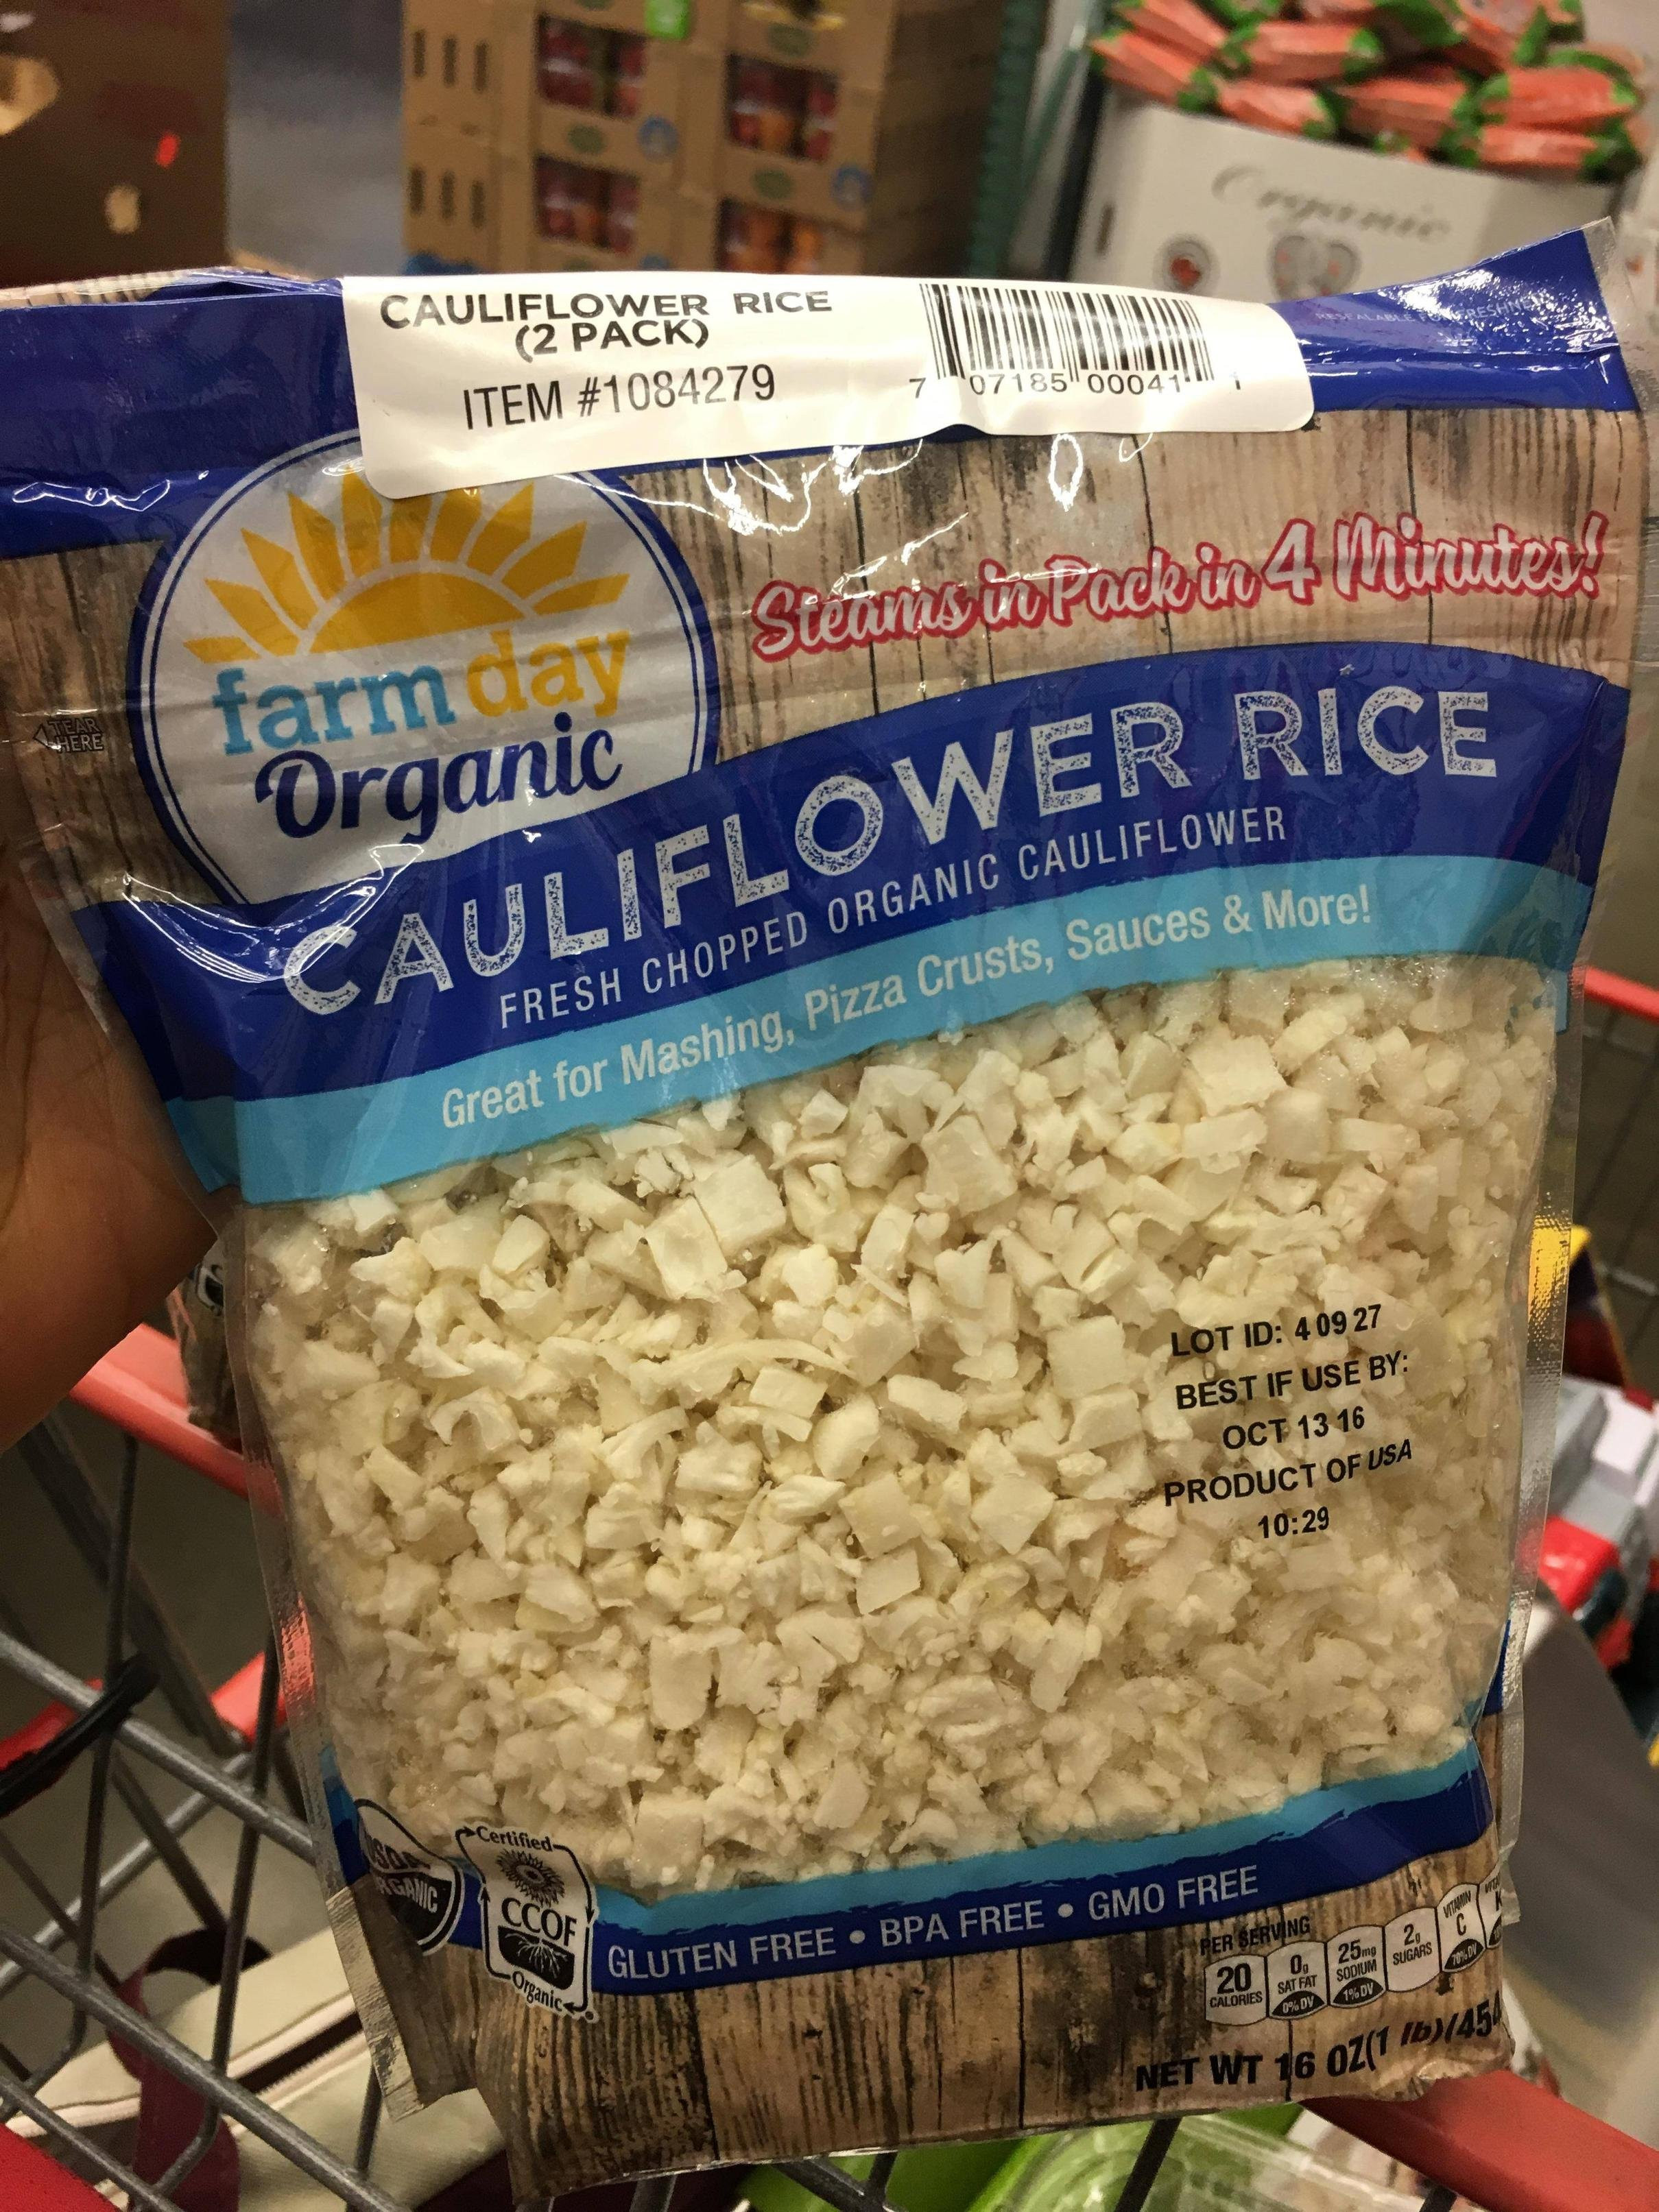 Cauliflower Rice Costco  Wifey just bought two 1 pound bags of Cauliflower rice at